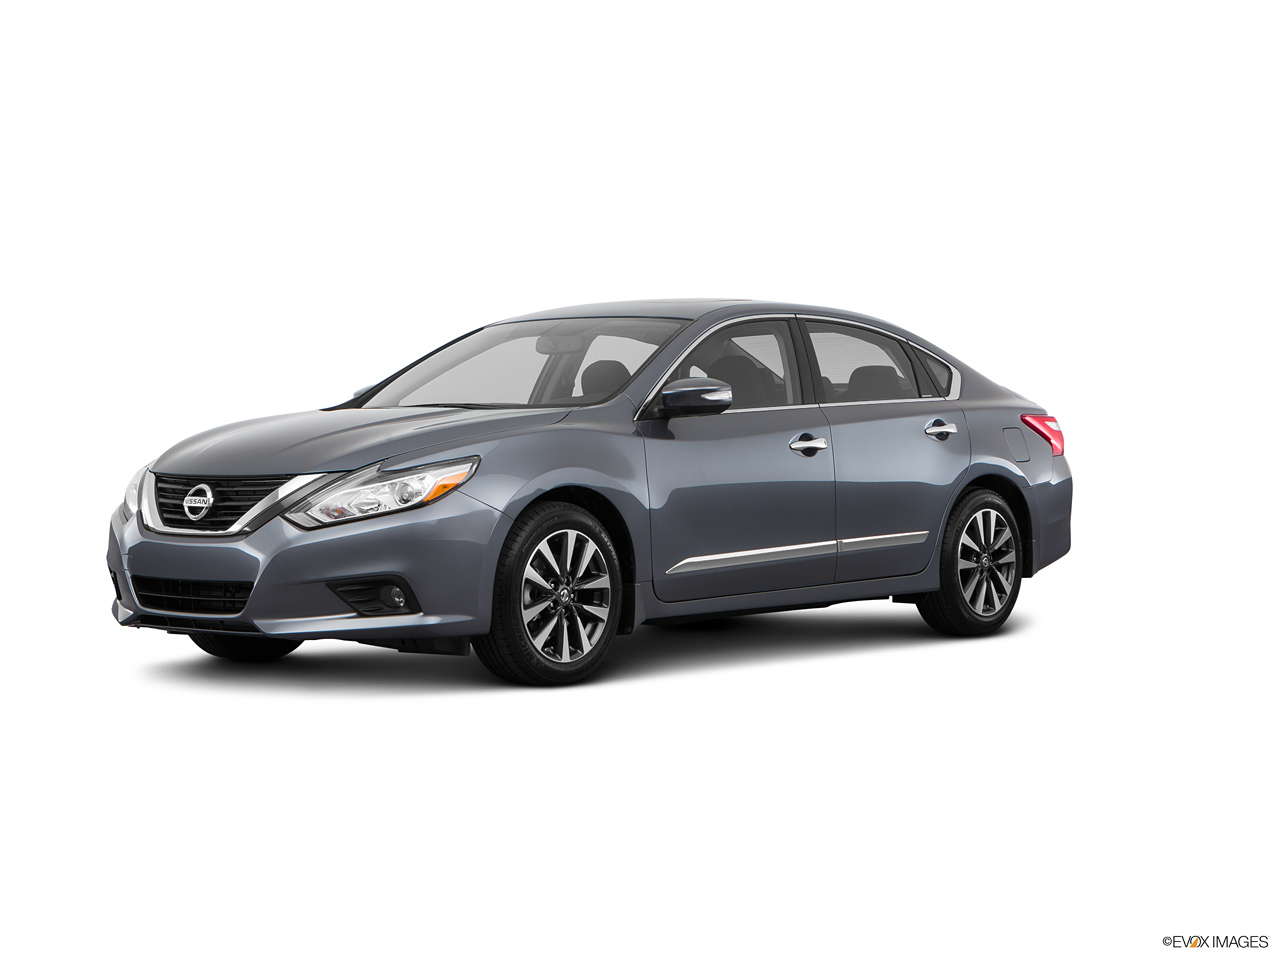 nissan altima 2017 2 5 sv in kuwait new car prices specs reviews photos yallamotor. Black Bedroom Furniture Sets. Home Design Ideas